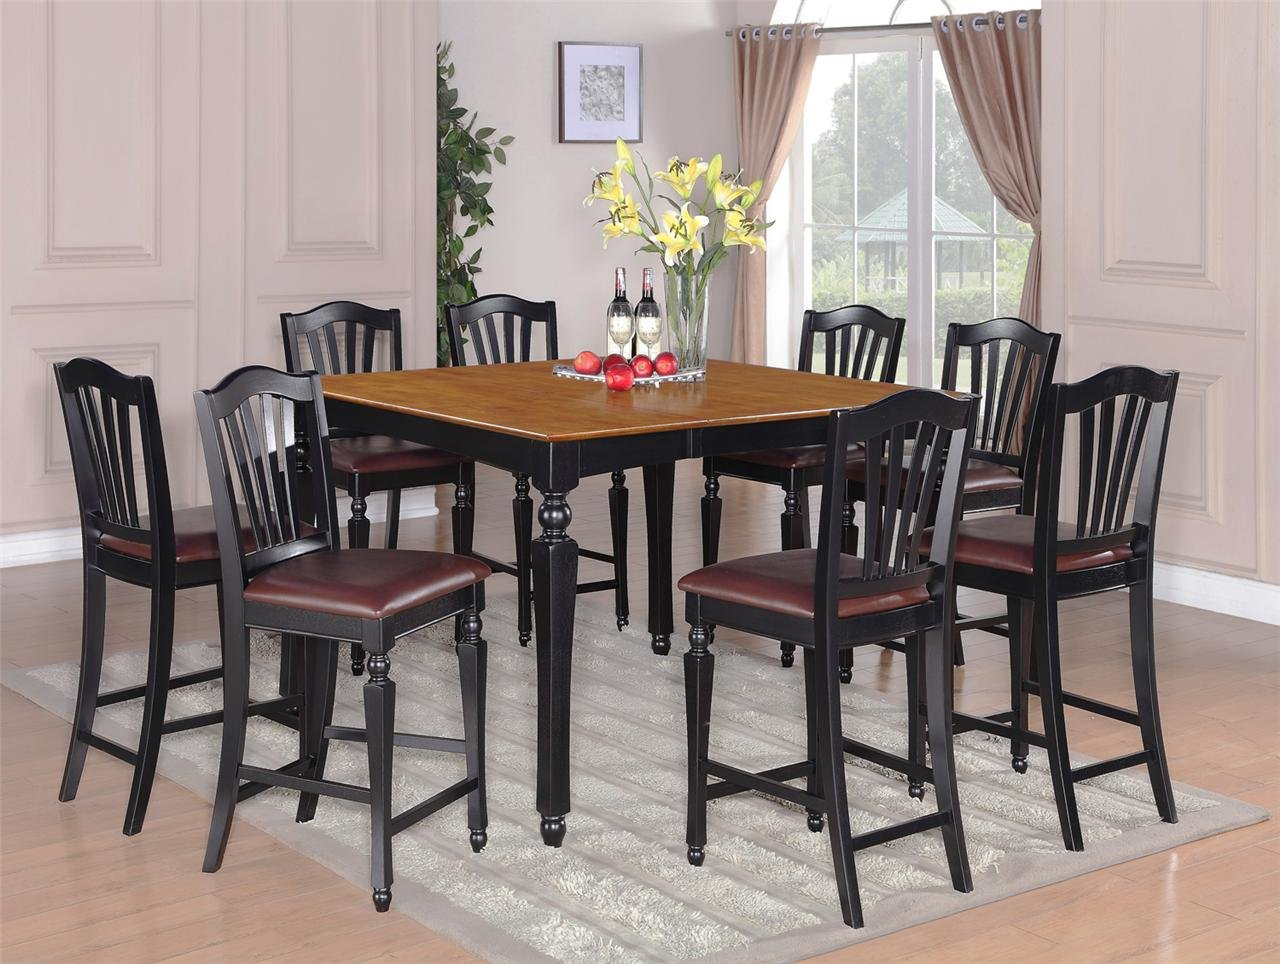 9pc chelsea kitchen counter height table w 8 leather seat chairs in black cherry sku ch9 blk lc. Black Bedroom Furniture Sets. Home Design Ideas